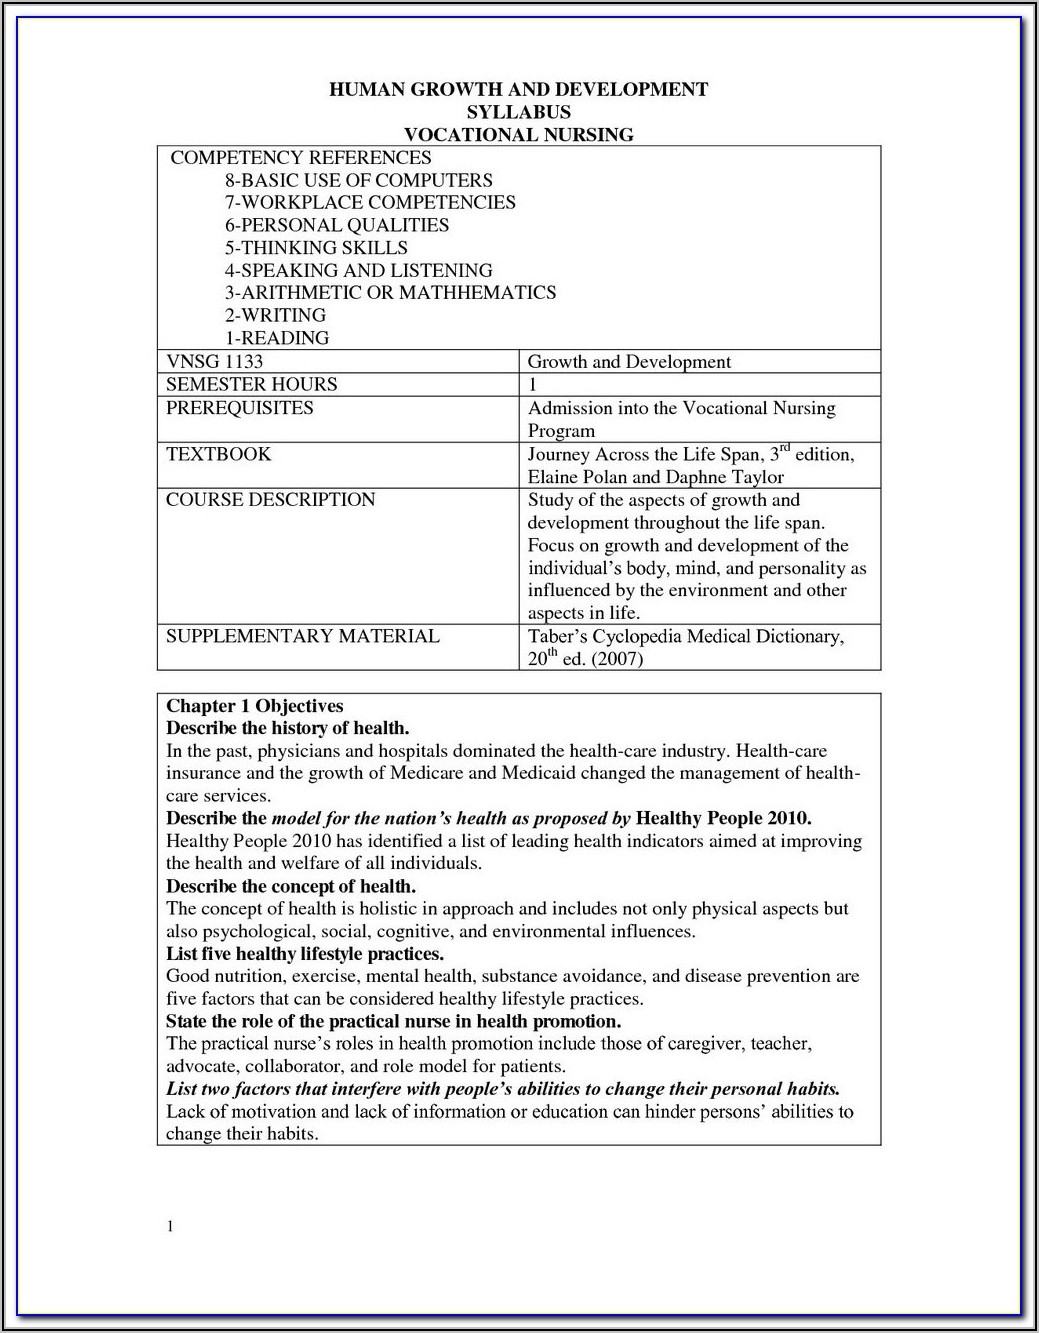 Blank Durable Power Of Attorney Form Georgia